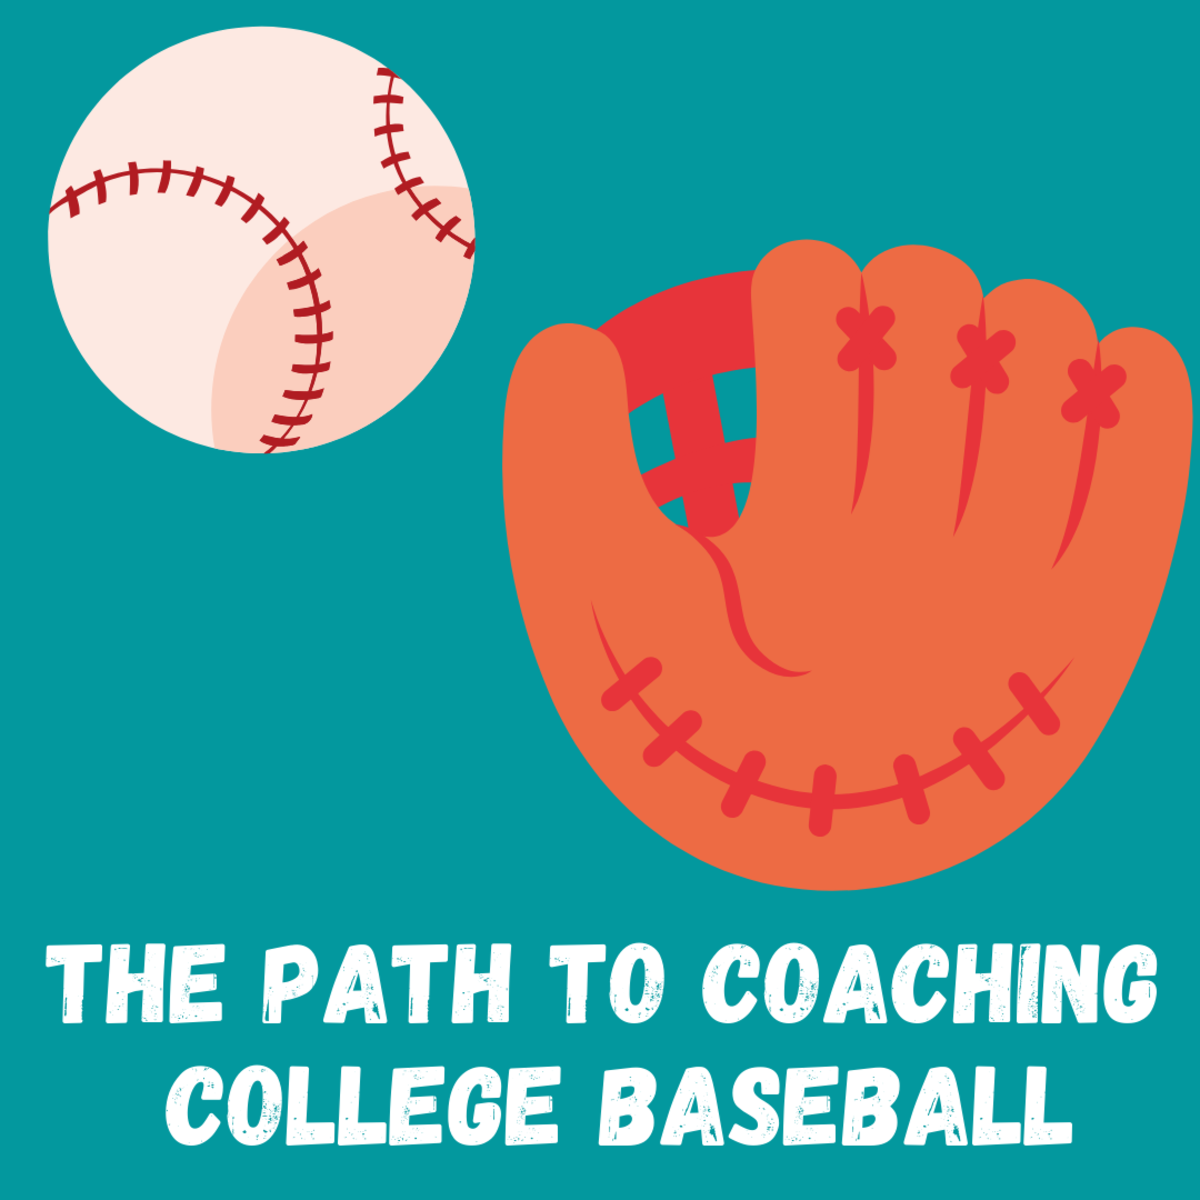 Read on to learn about getting into college coaching and some important steps in the process.